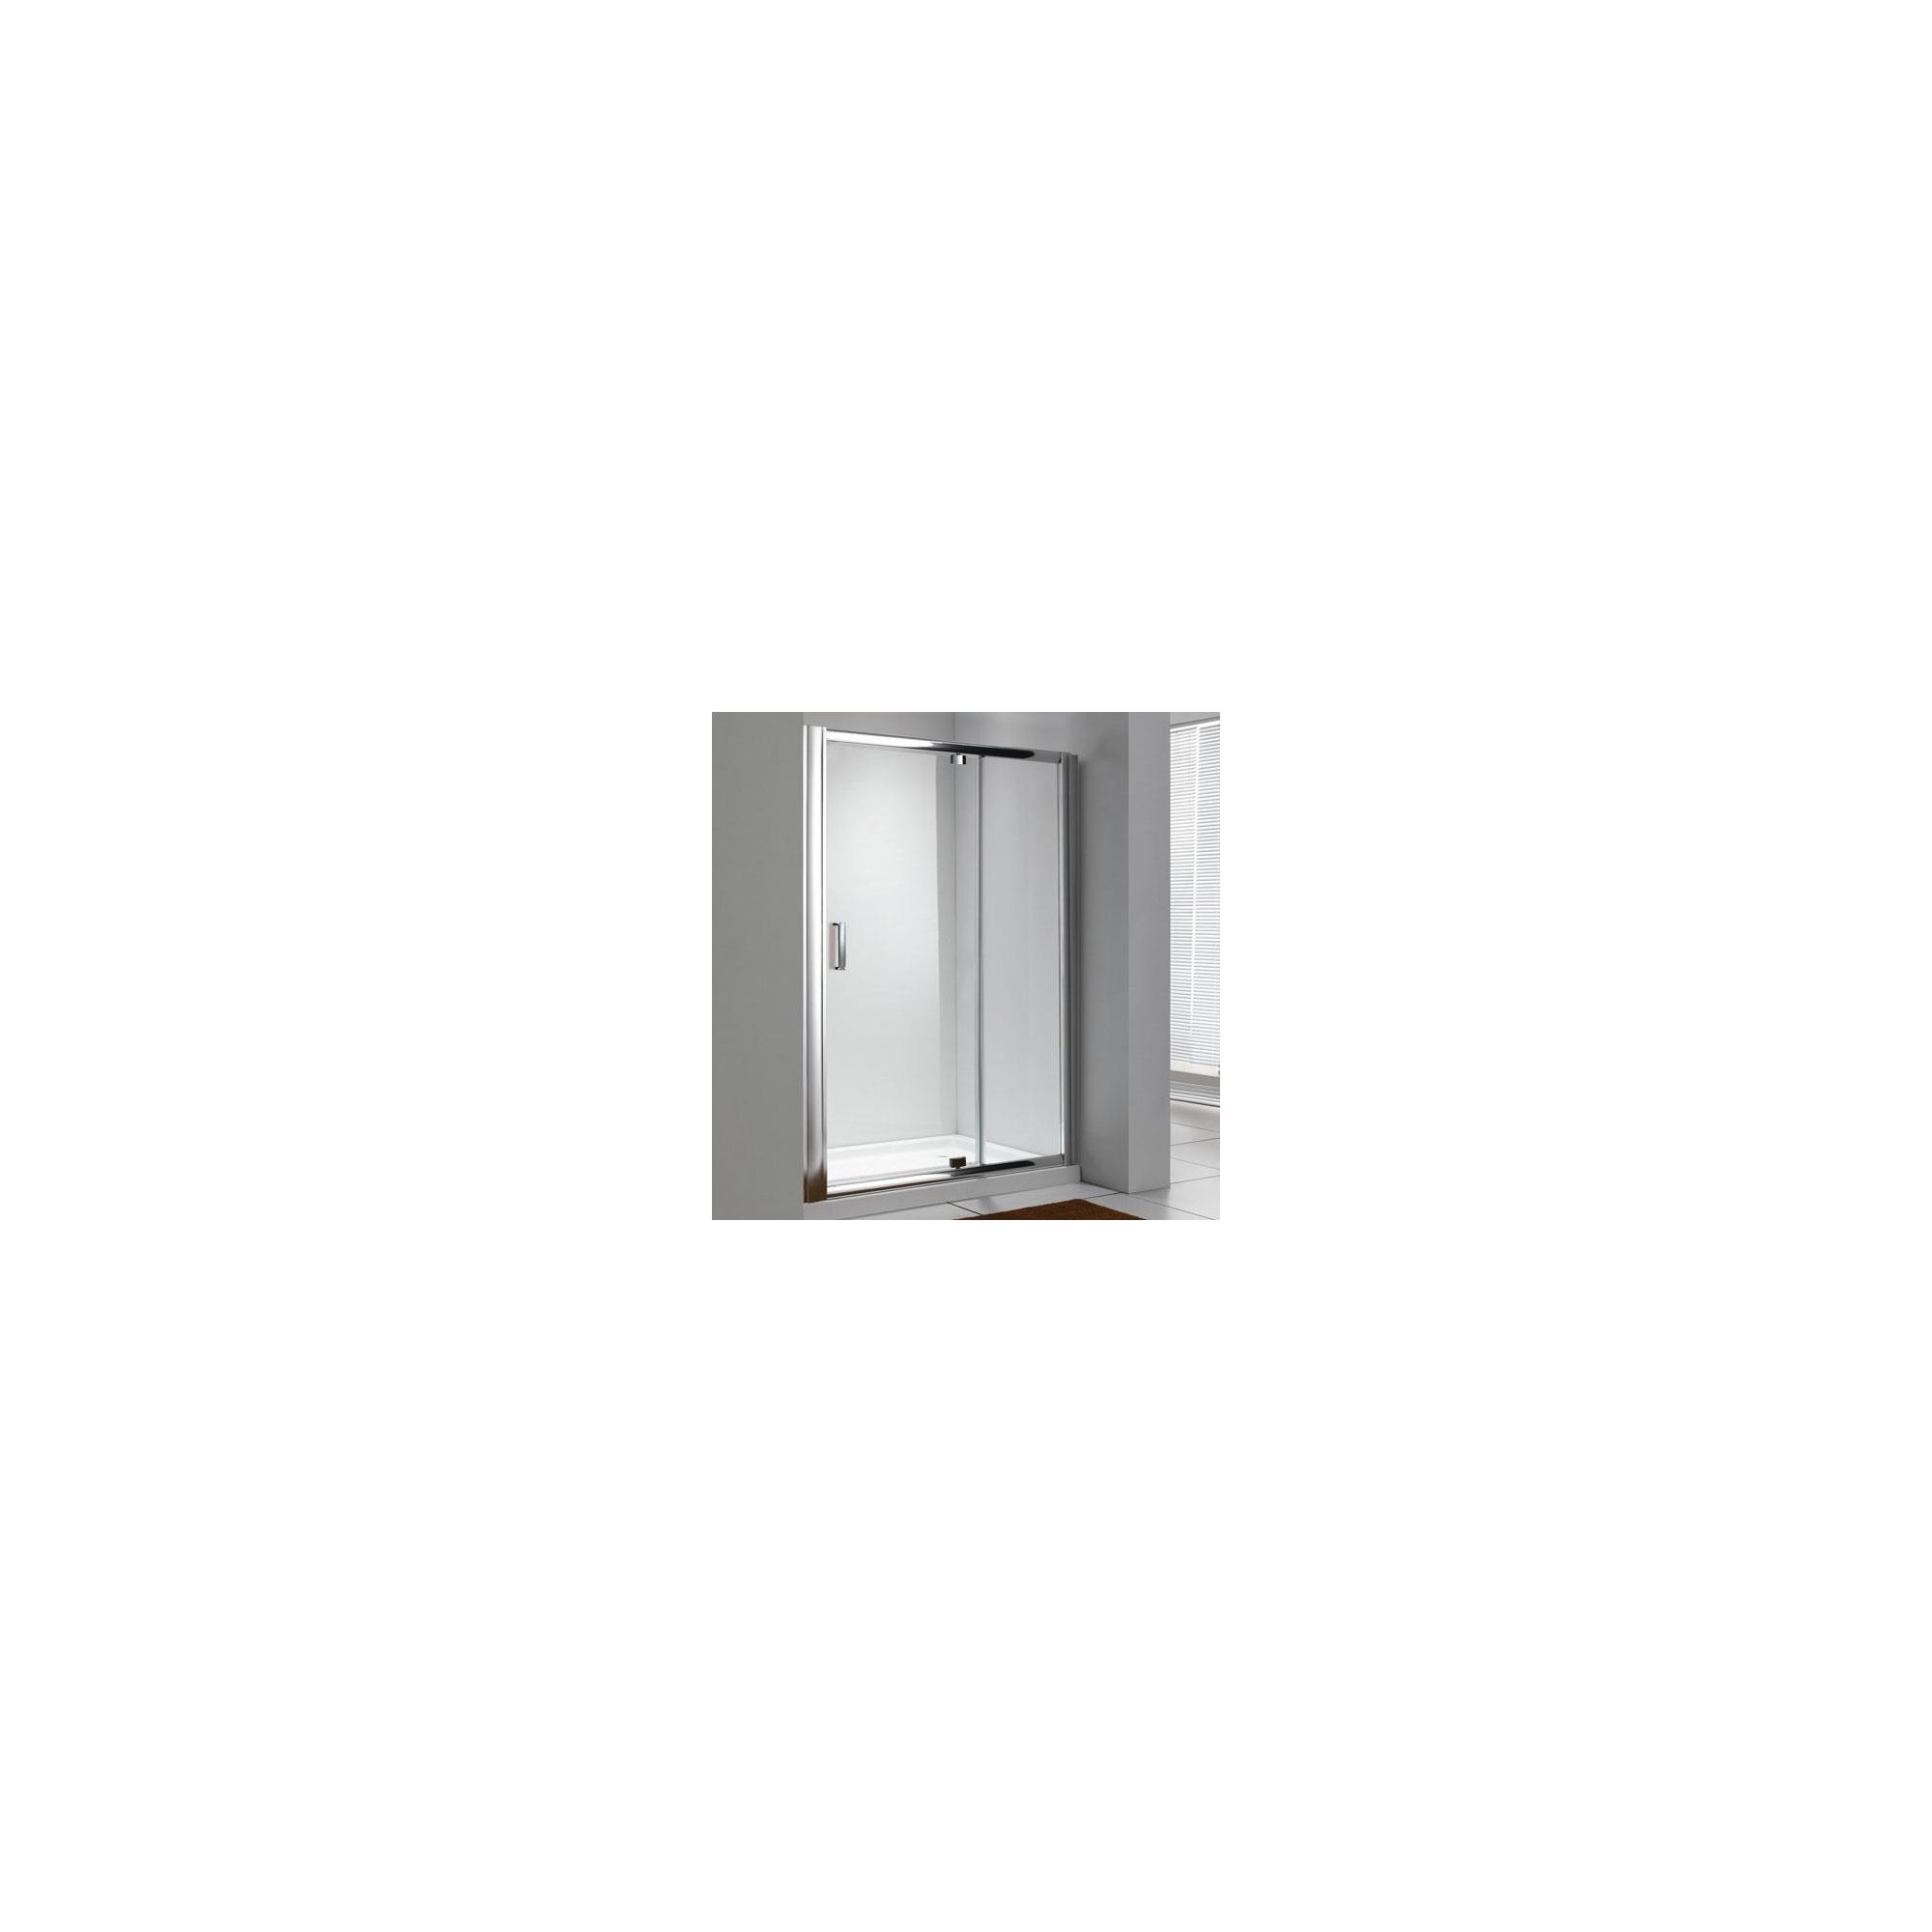 Duchy Style Pivot Door Shower Enclosure, 1000mm x 760mm, 6mm Glass, Low Profile Tray at Tesco Direct